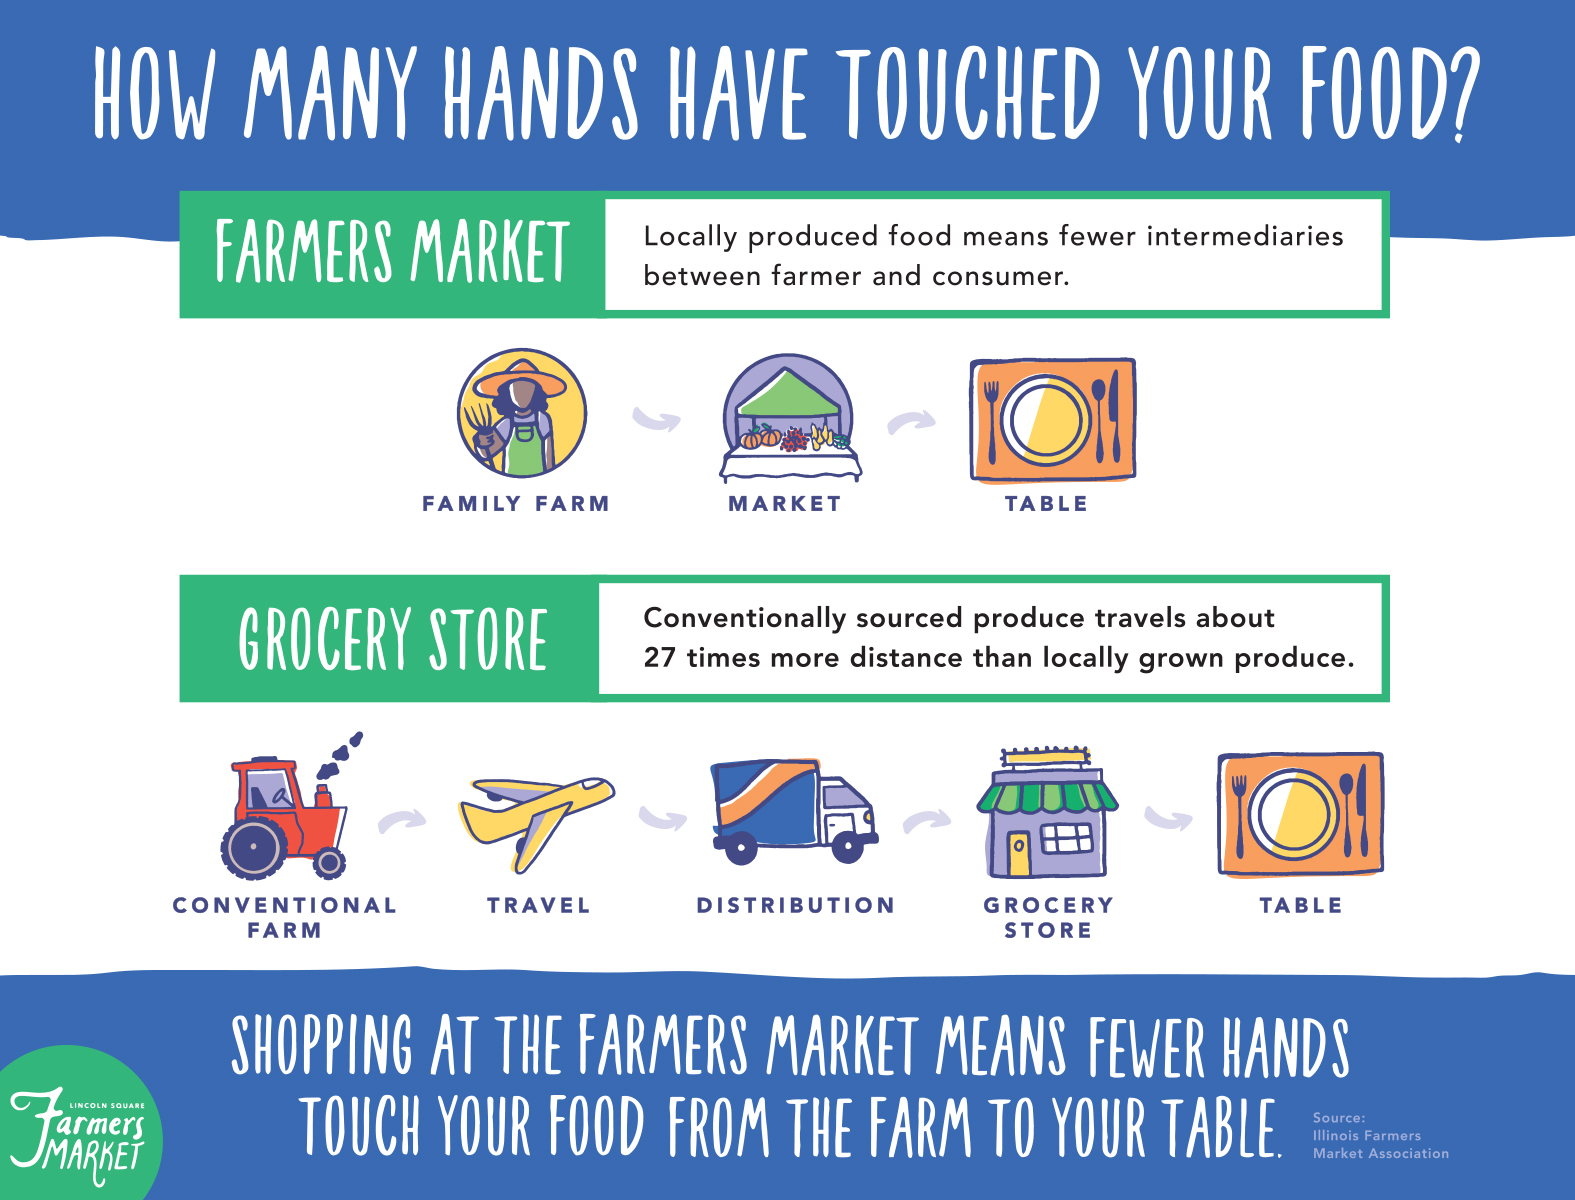 Lincoln Square Farmers Market - How Many Hands Have Touched Your Food